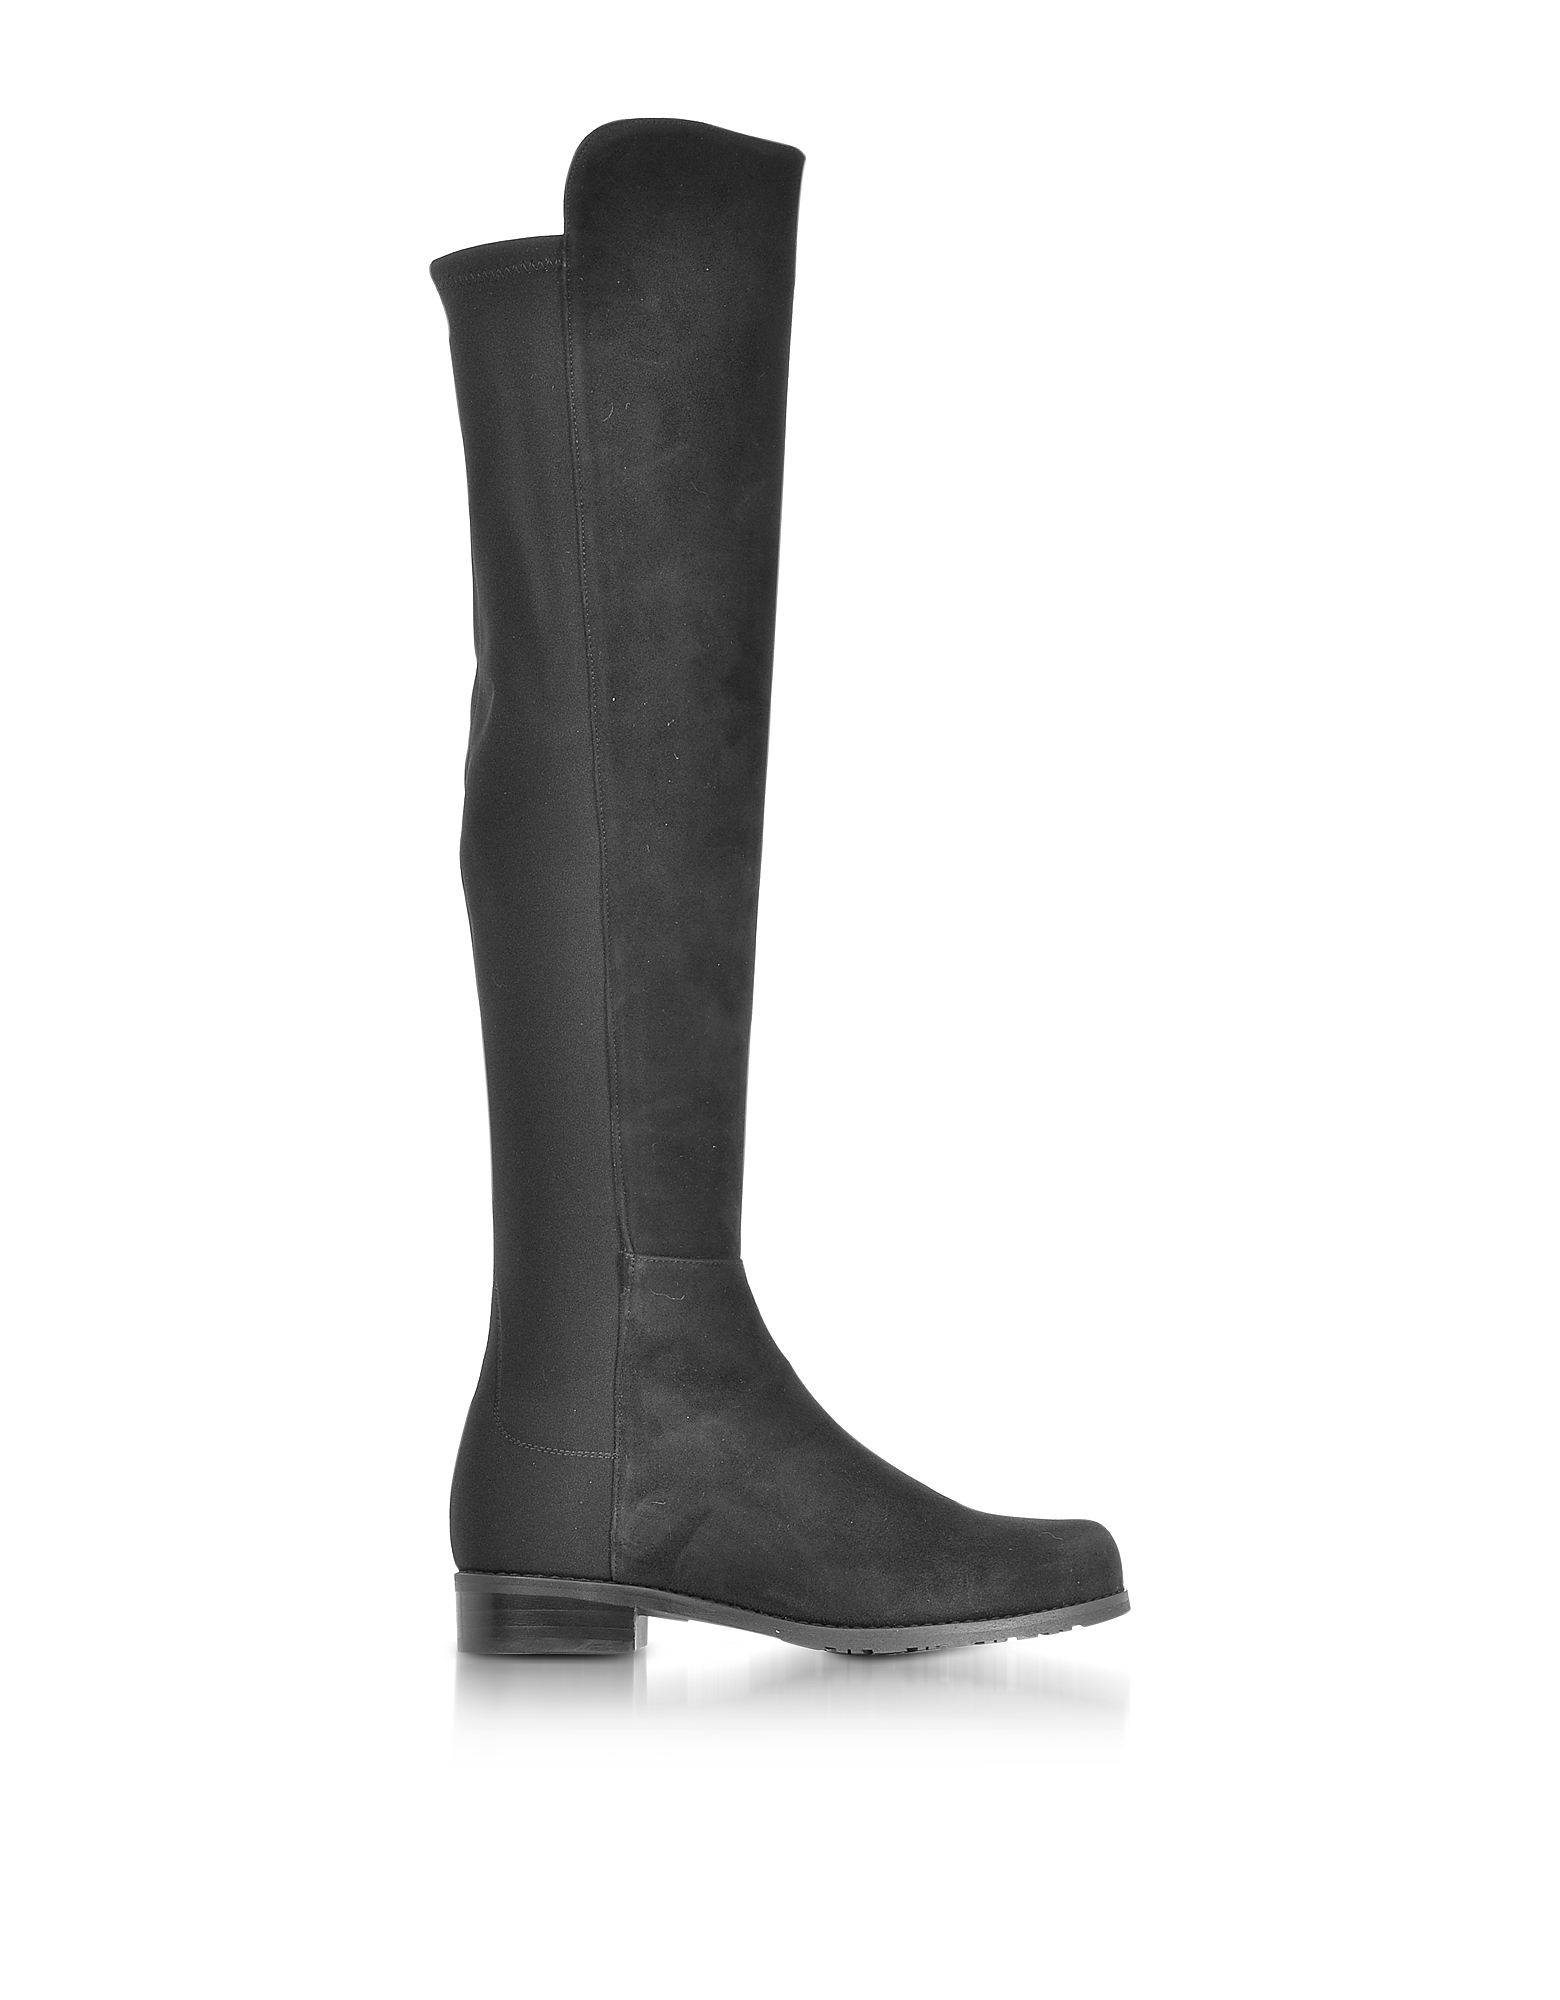 Stuart Weitzman Shoes, 5050 Black Suede and Stretch Fabric Over The Knee Boots